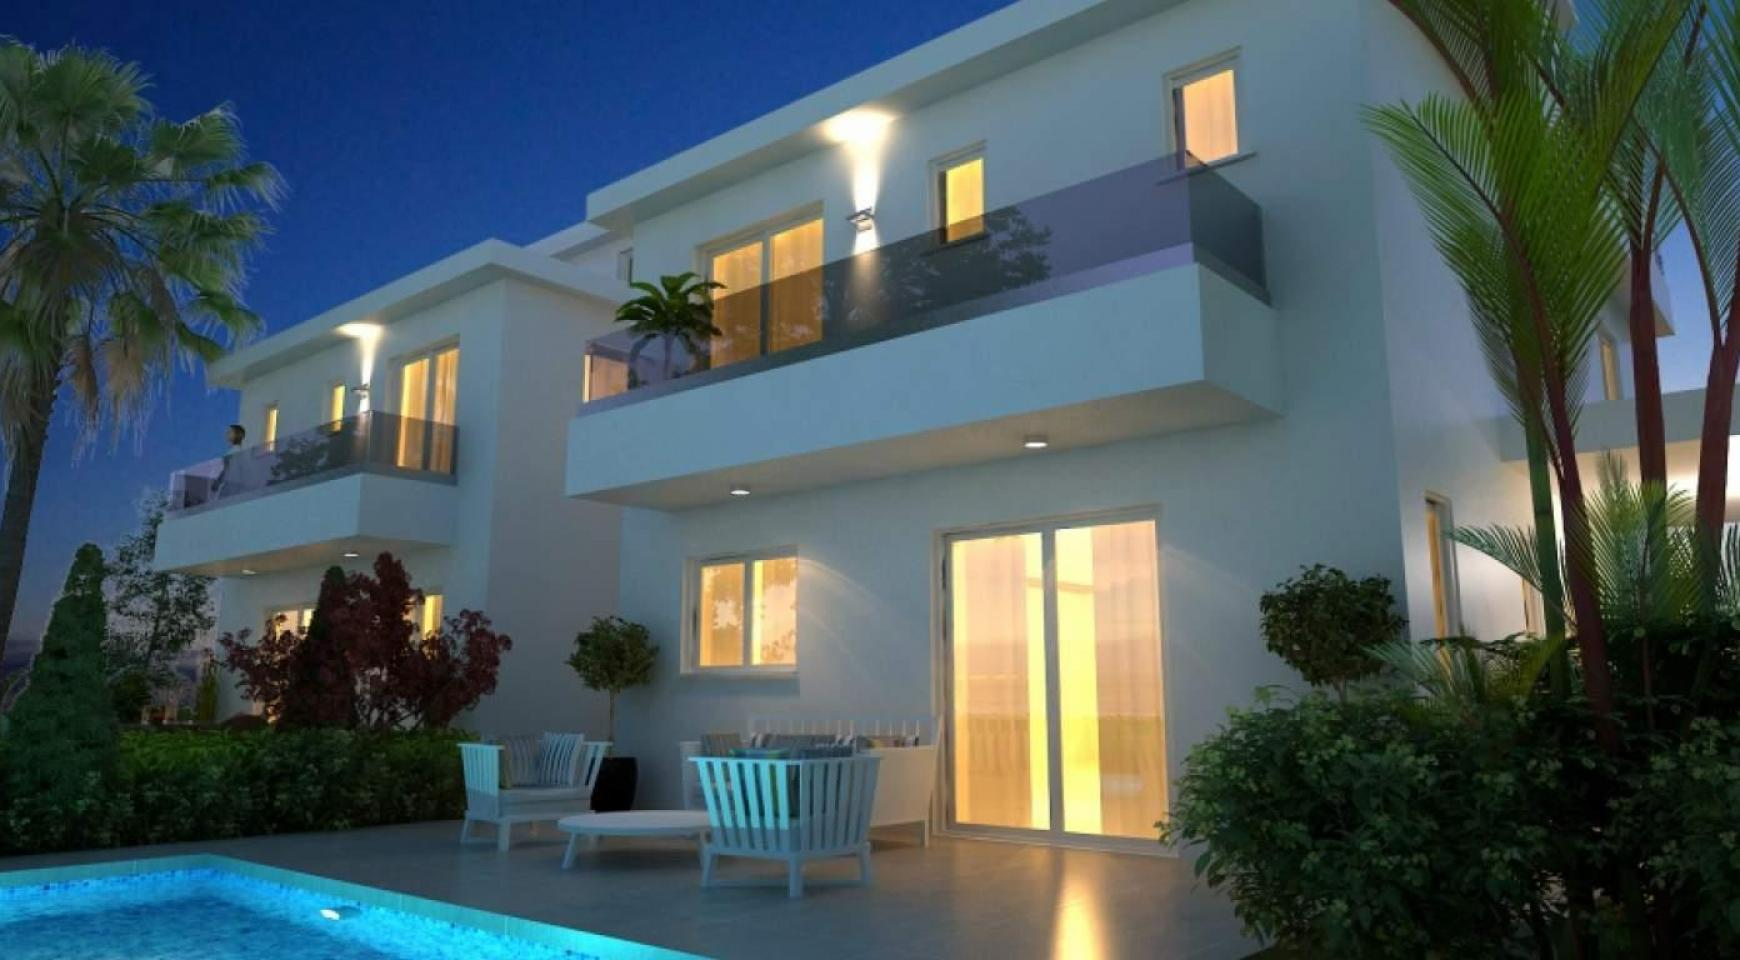 New Modern 4 Bedroom House in Leivadia Area - 2